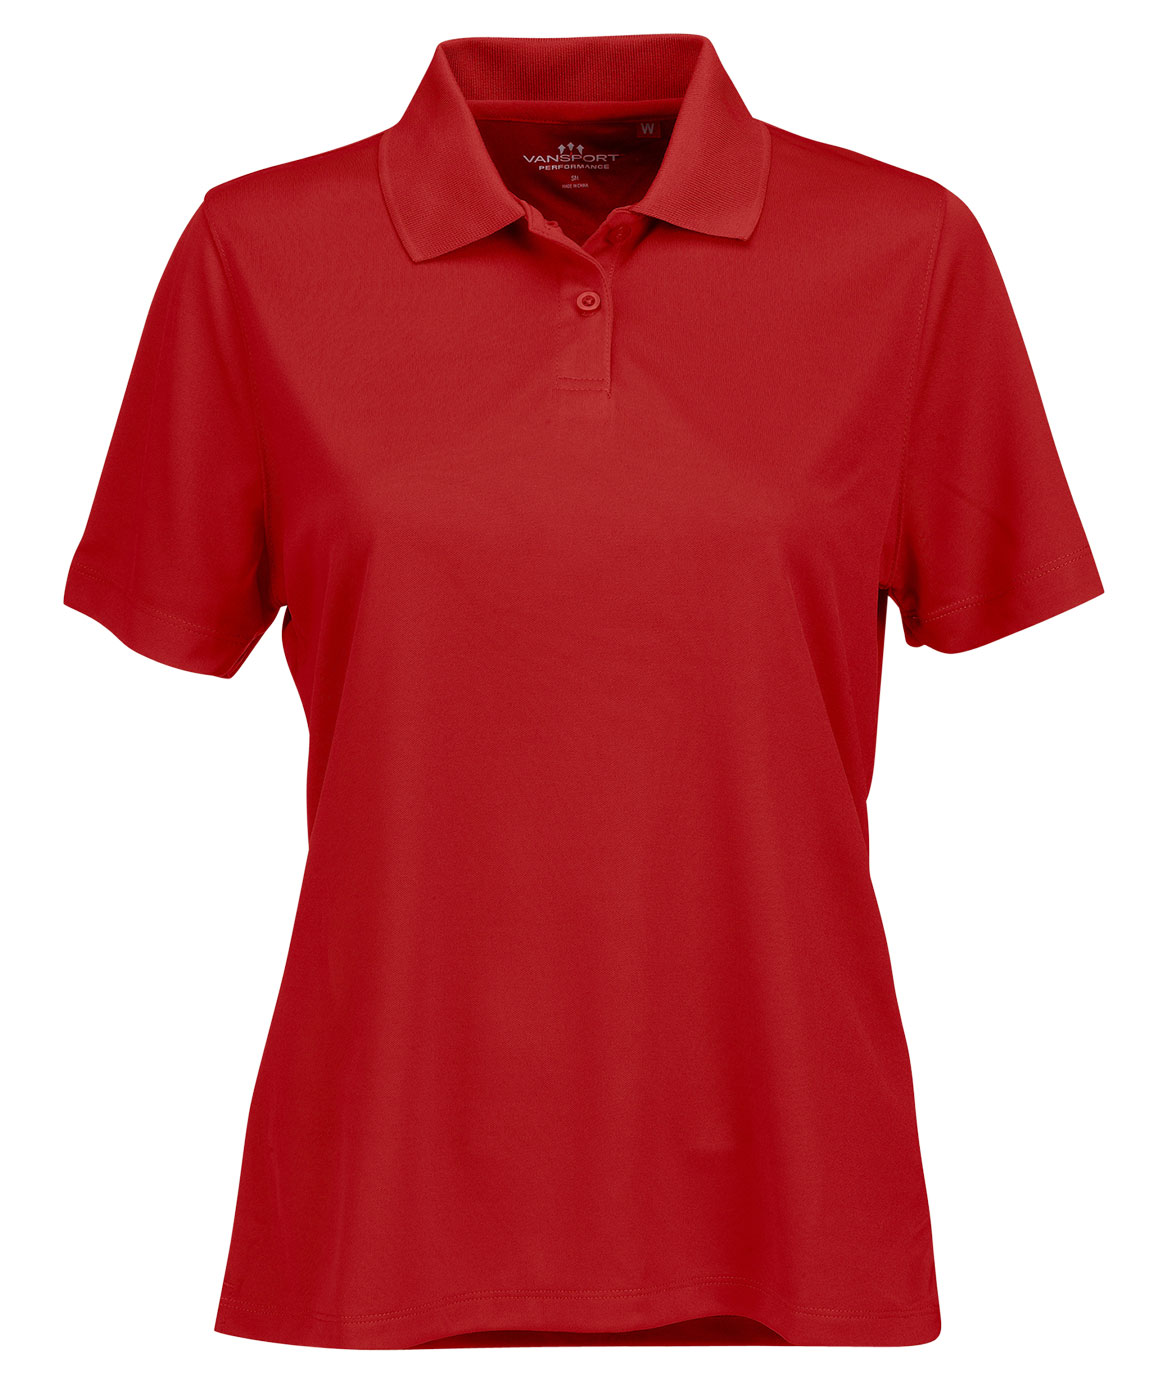 Womens Vansport� Omega Solid Mesh Tech Polo